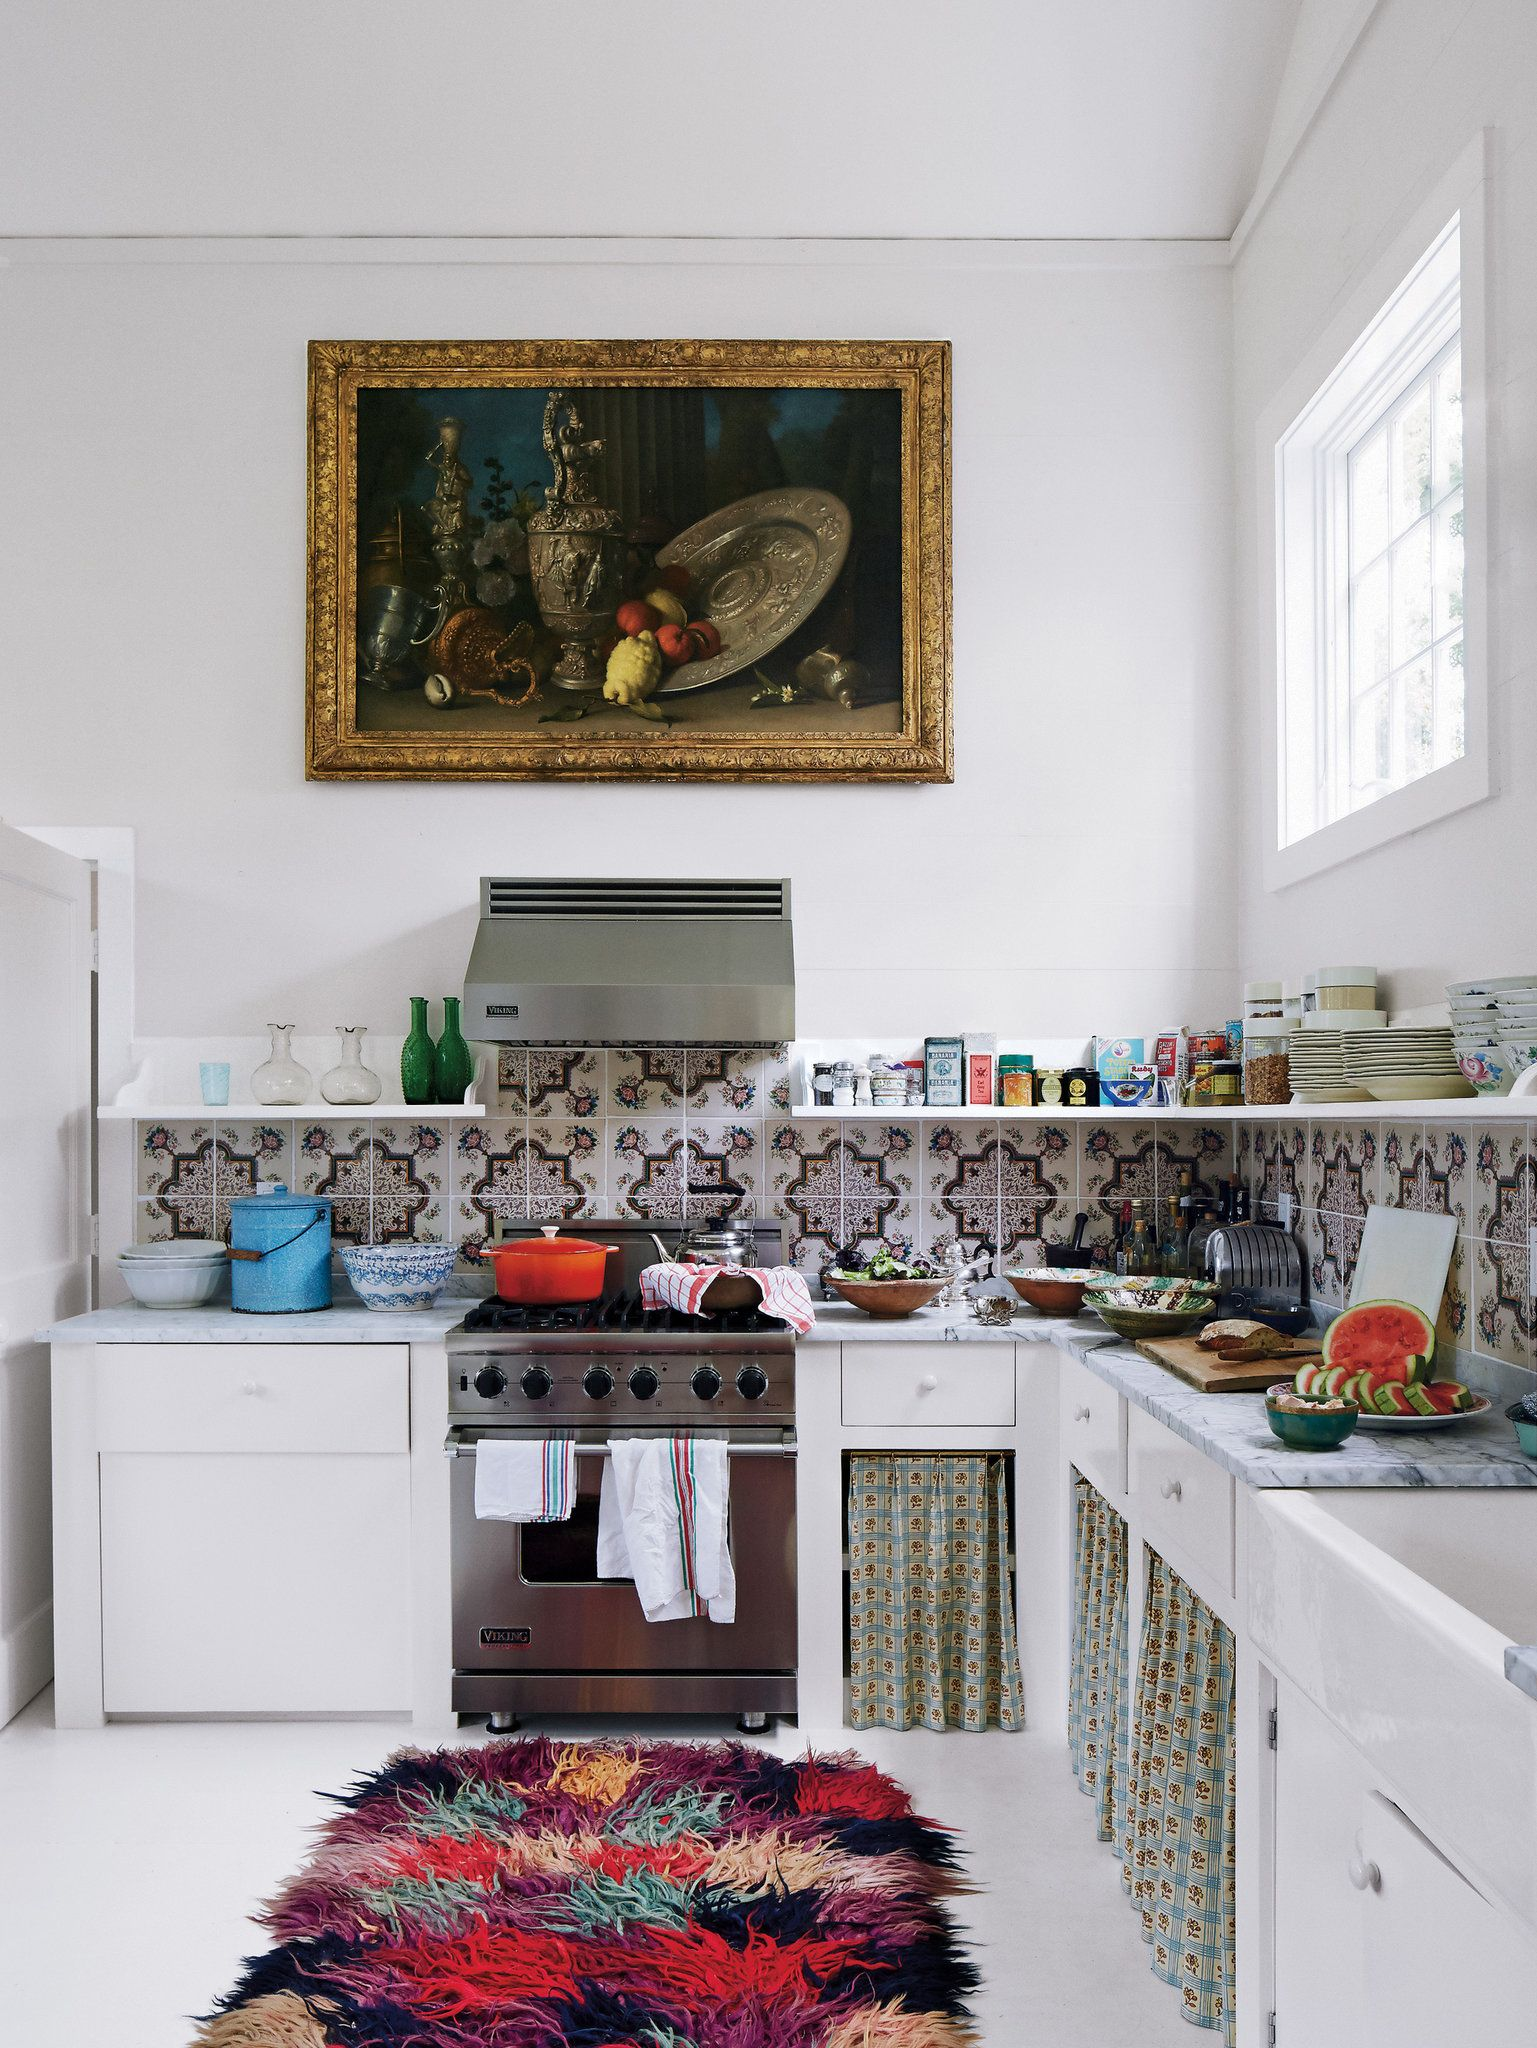 Uncategorized Bohemian Kitchen Design exquisite pleasures east hampton editor and toms tuesday inspirationbohemian kitchenbohemian